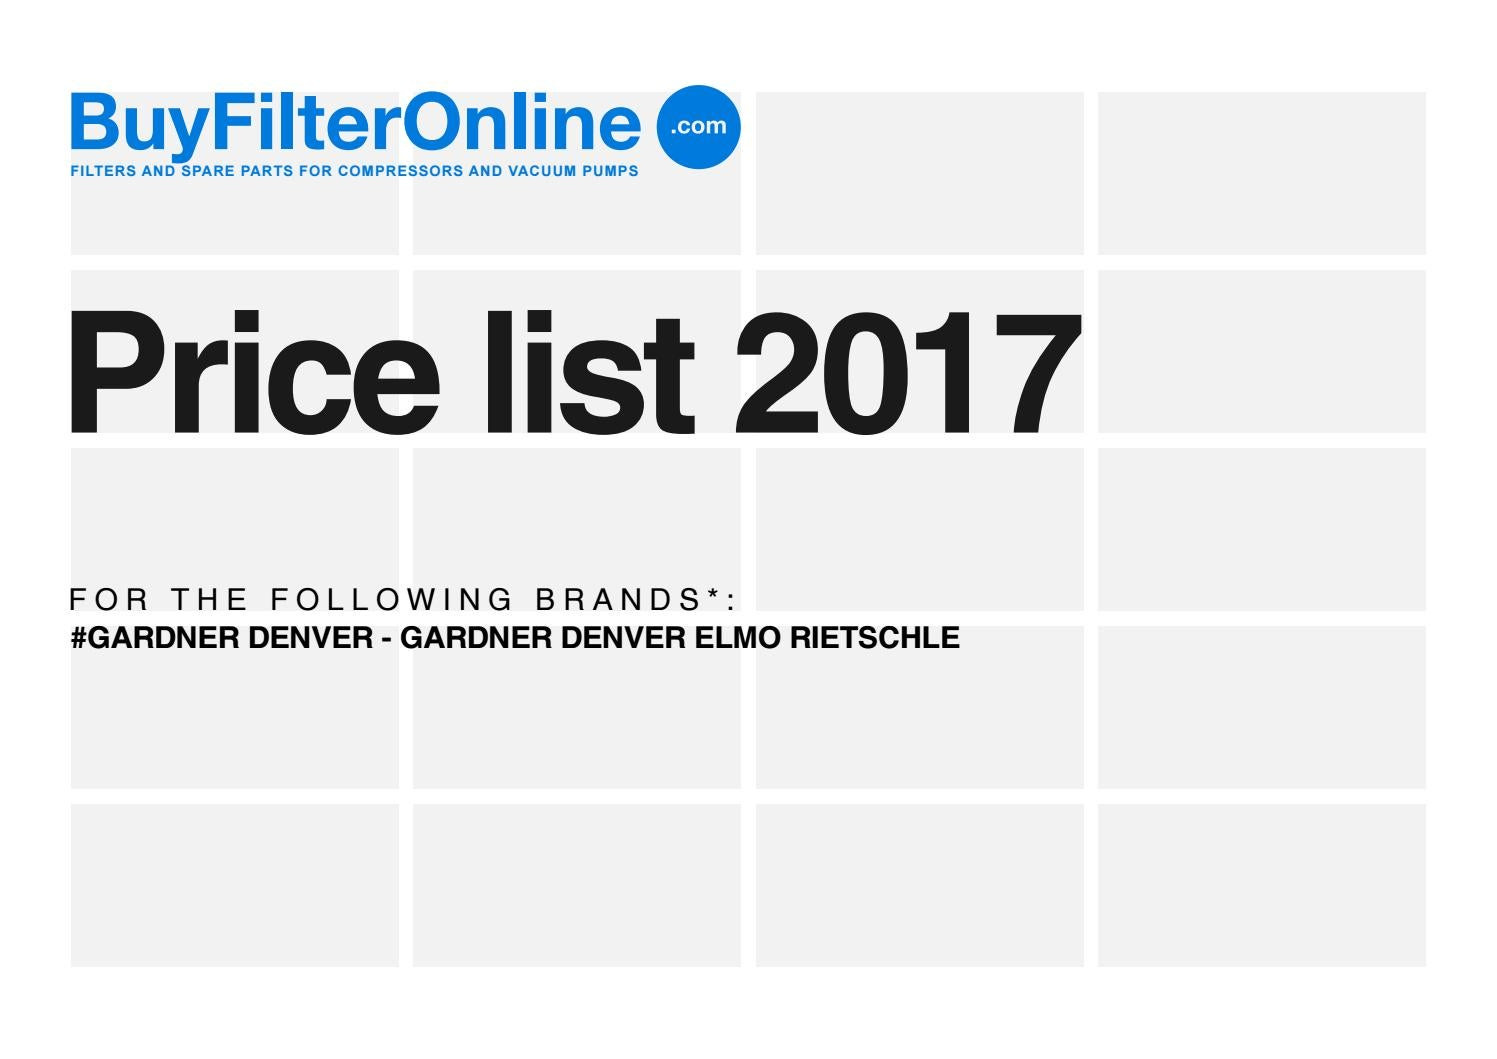 Buyfilteronlinecom Filters For Compressors Price List 2017 Circuit Breaker 12v Dc Solenoid And Tripping Coil Buy Coil24v Gardner Denver Elmo Rietschle By Oilservice Issuu